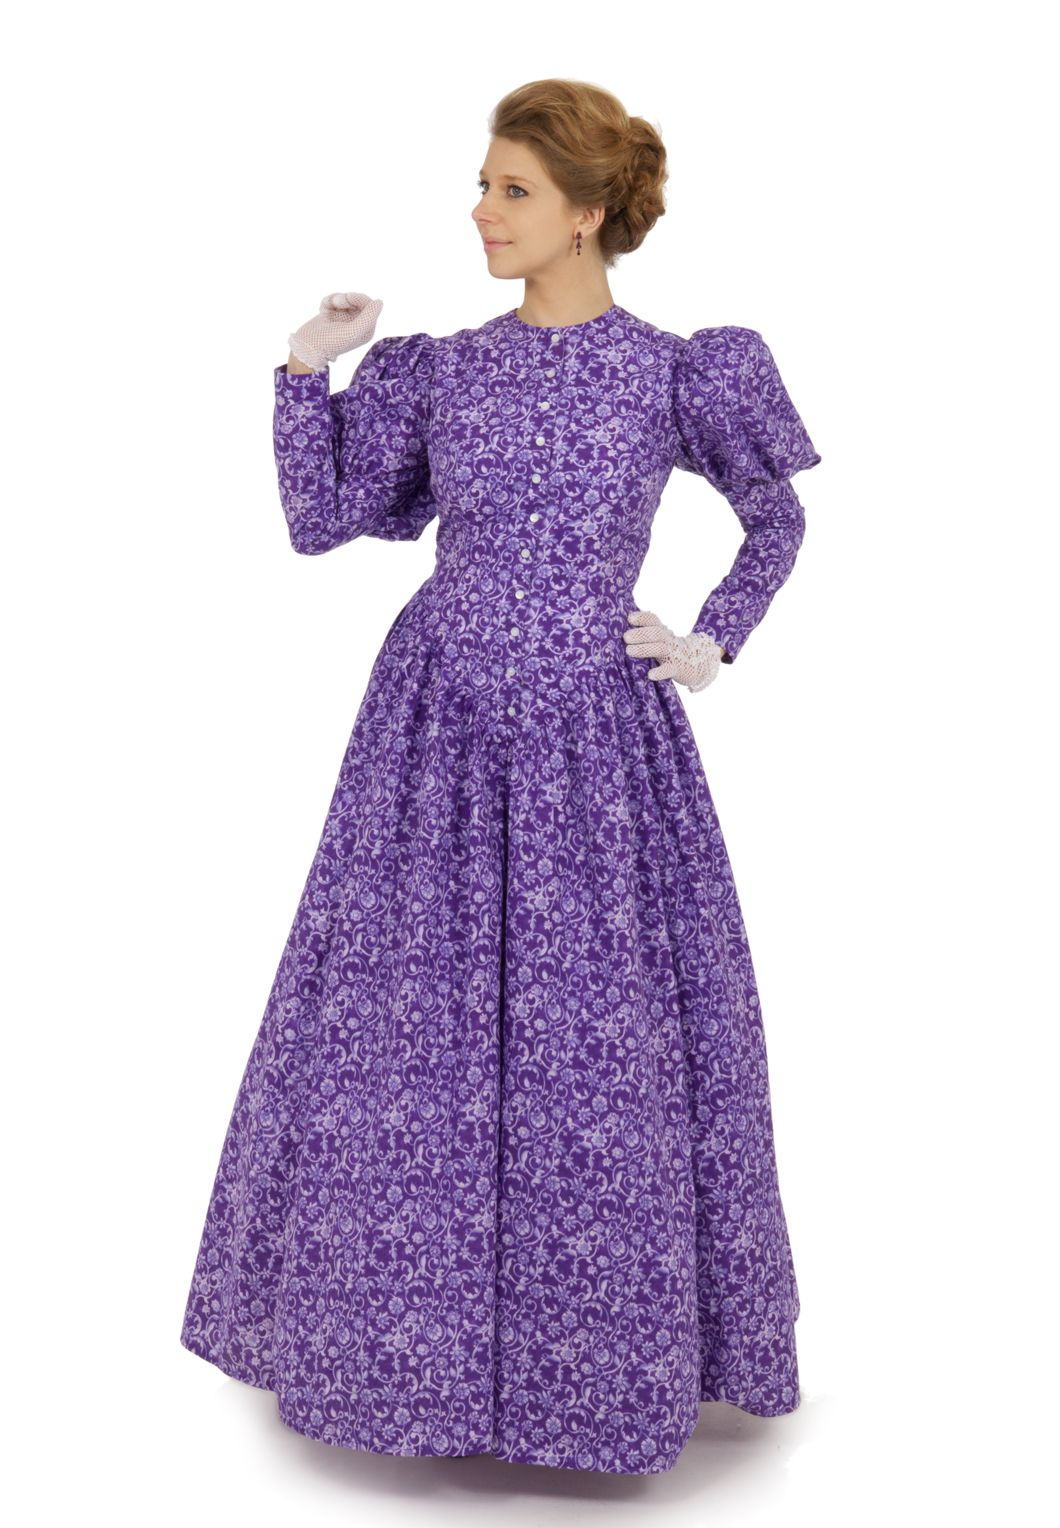 Victorian Style Dress By Recollections This Is Listed Under Bustle Styles But It Has No And Puffed Sleeves Putting Squarely In The 1890s